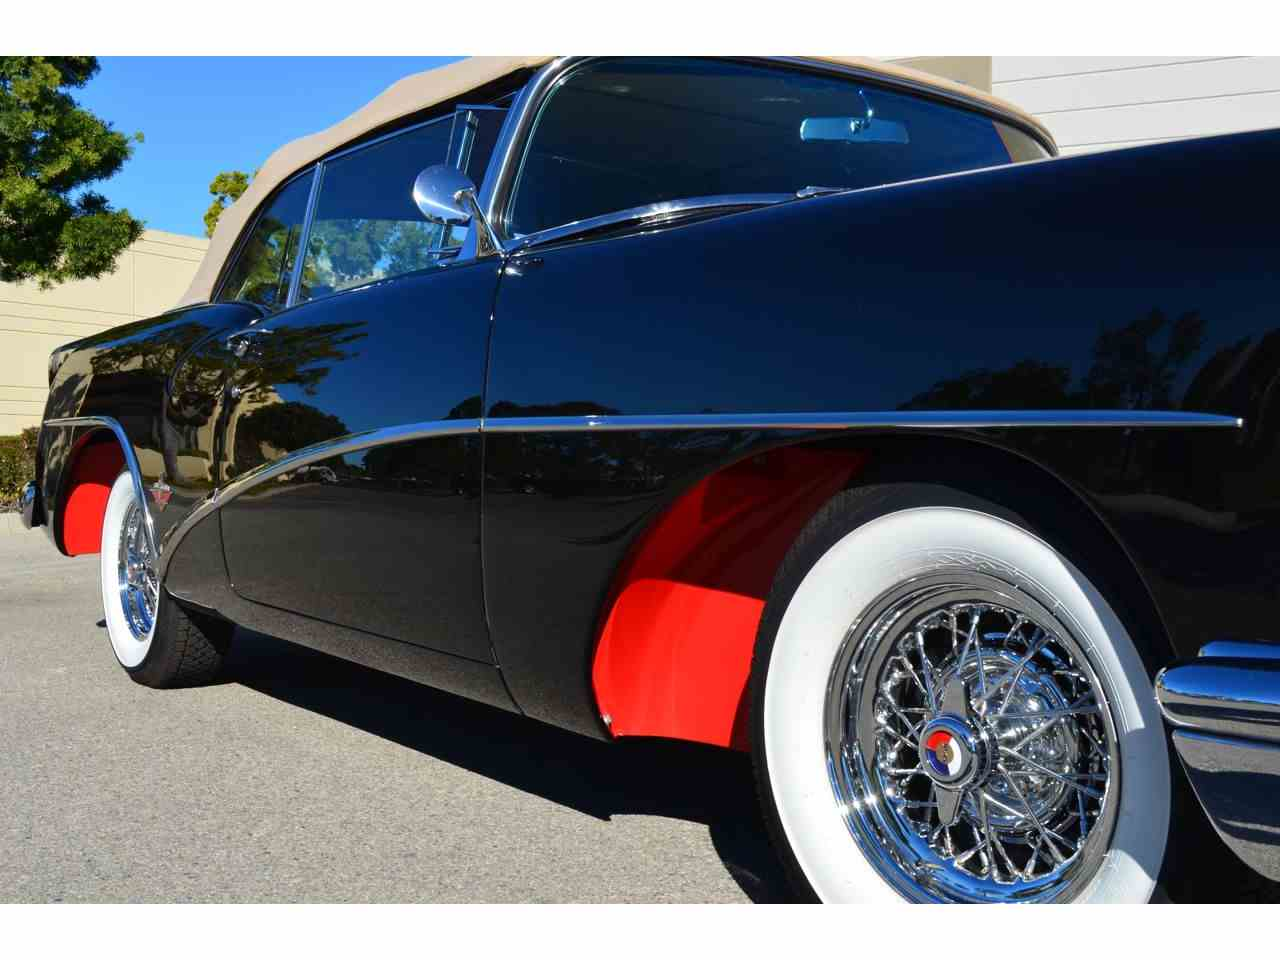 Large Picture of 1954 Buick Skylark located in California - $129,000.00 Offered by Spoke Motors - LT5D